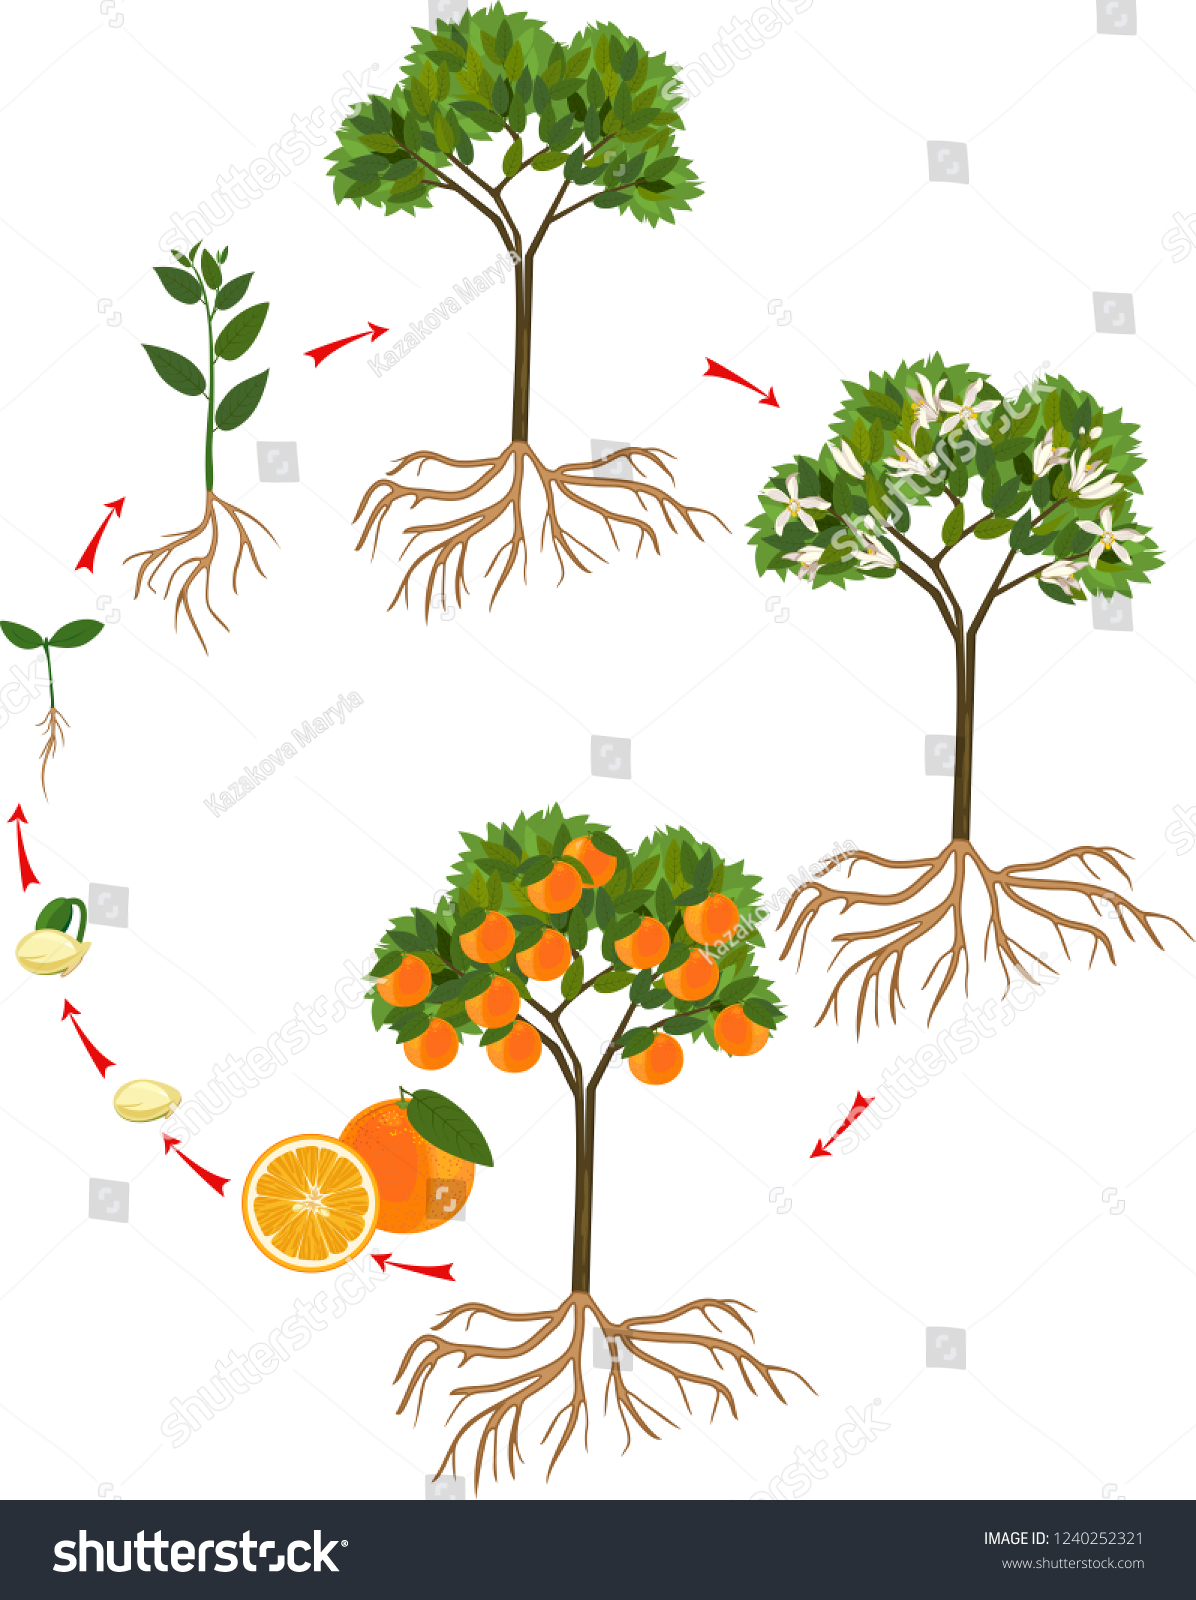 Life Cycle Orange Tree Stages Growth Stock Vector (Royalty Free) 1240252321Shutterstock